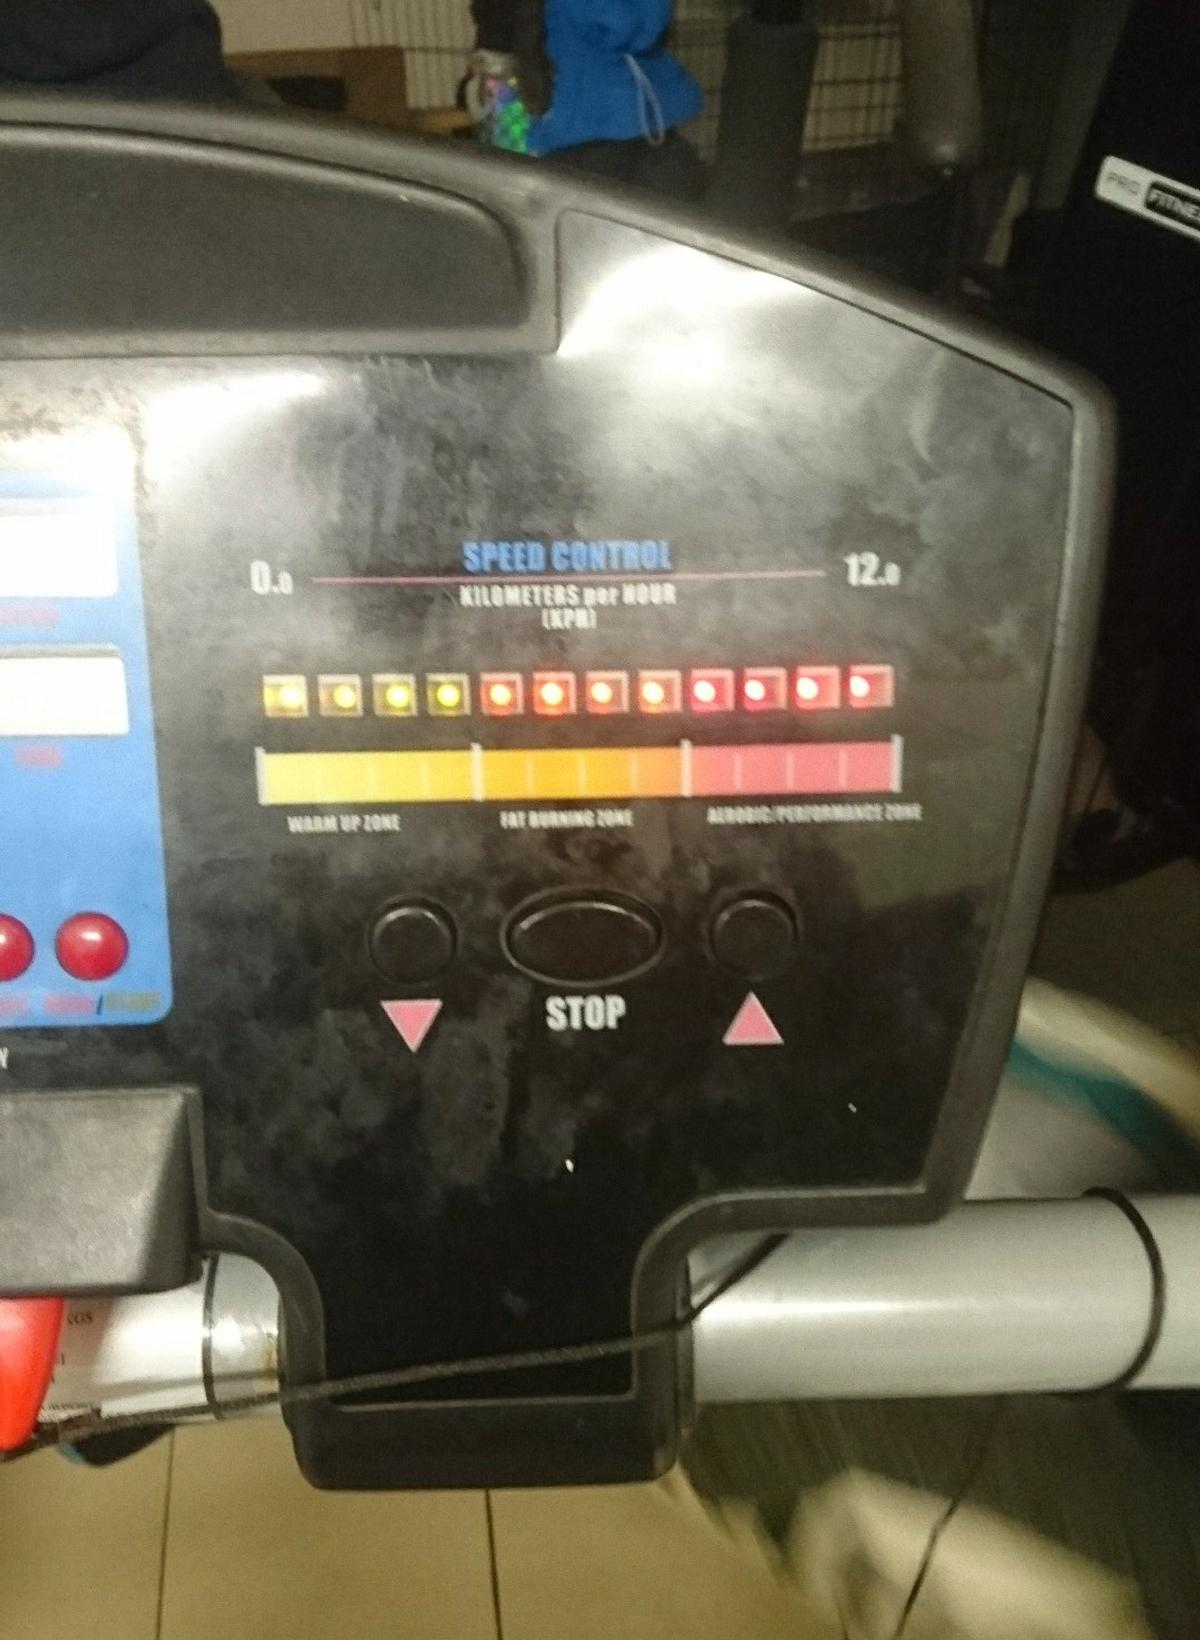 Pro fitness. Multi gym,Treadmill. Cross Trai in HD6 Calderdale for £150.00  for sale | Shpock